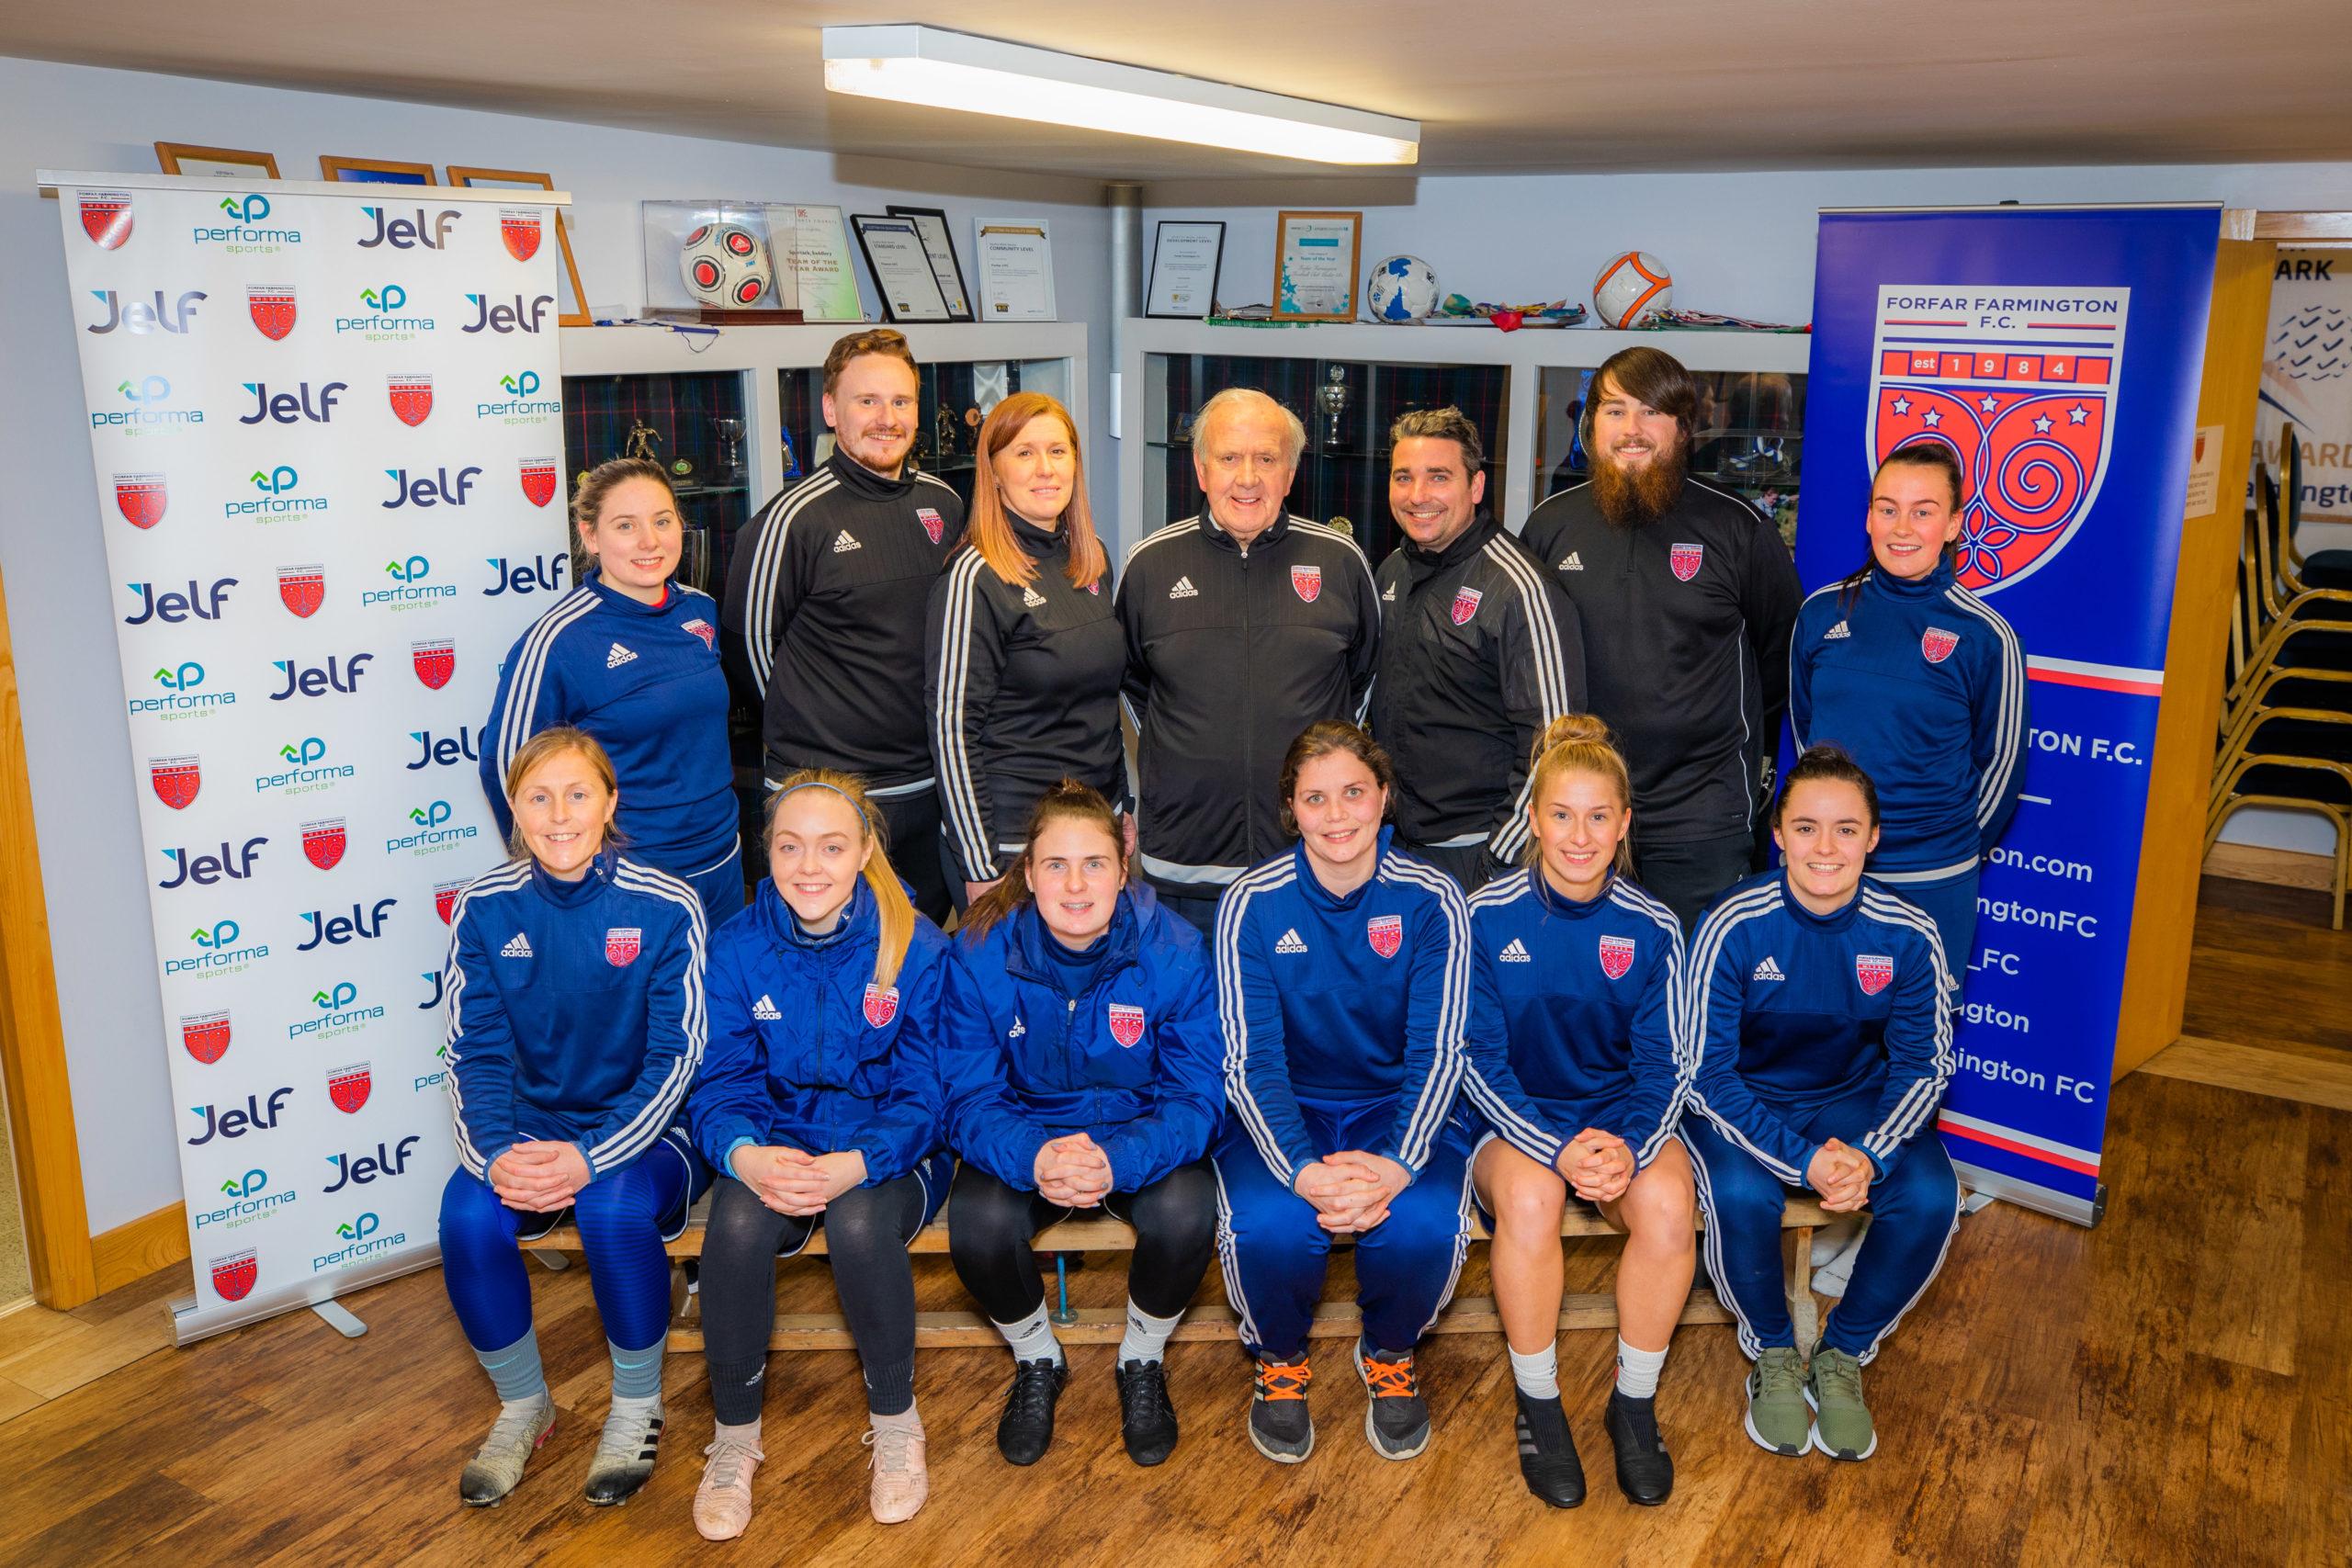 Farmington players with (back) assistant coach Paul Nicol, development officer Nicola McBride, chairman Colin Brown, head coach Ryan McConville and goalkeeping coach Fraser Reid.